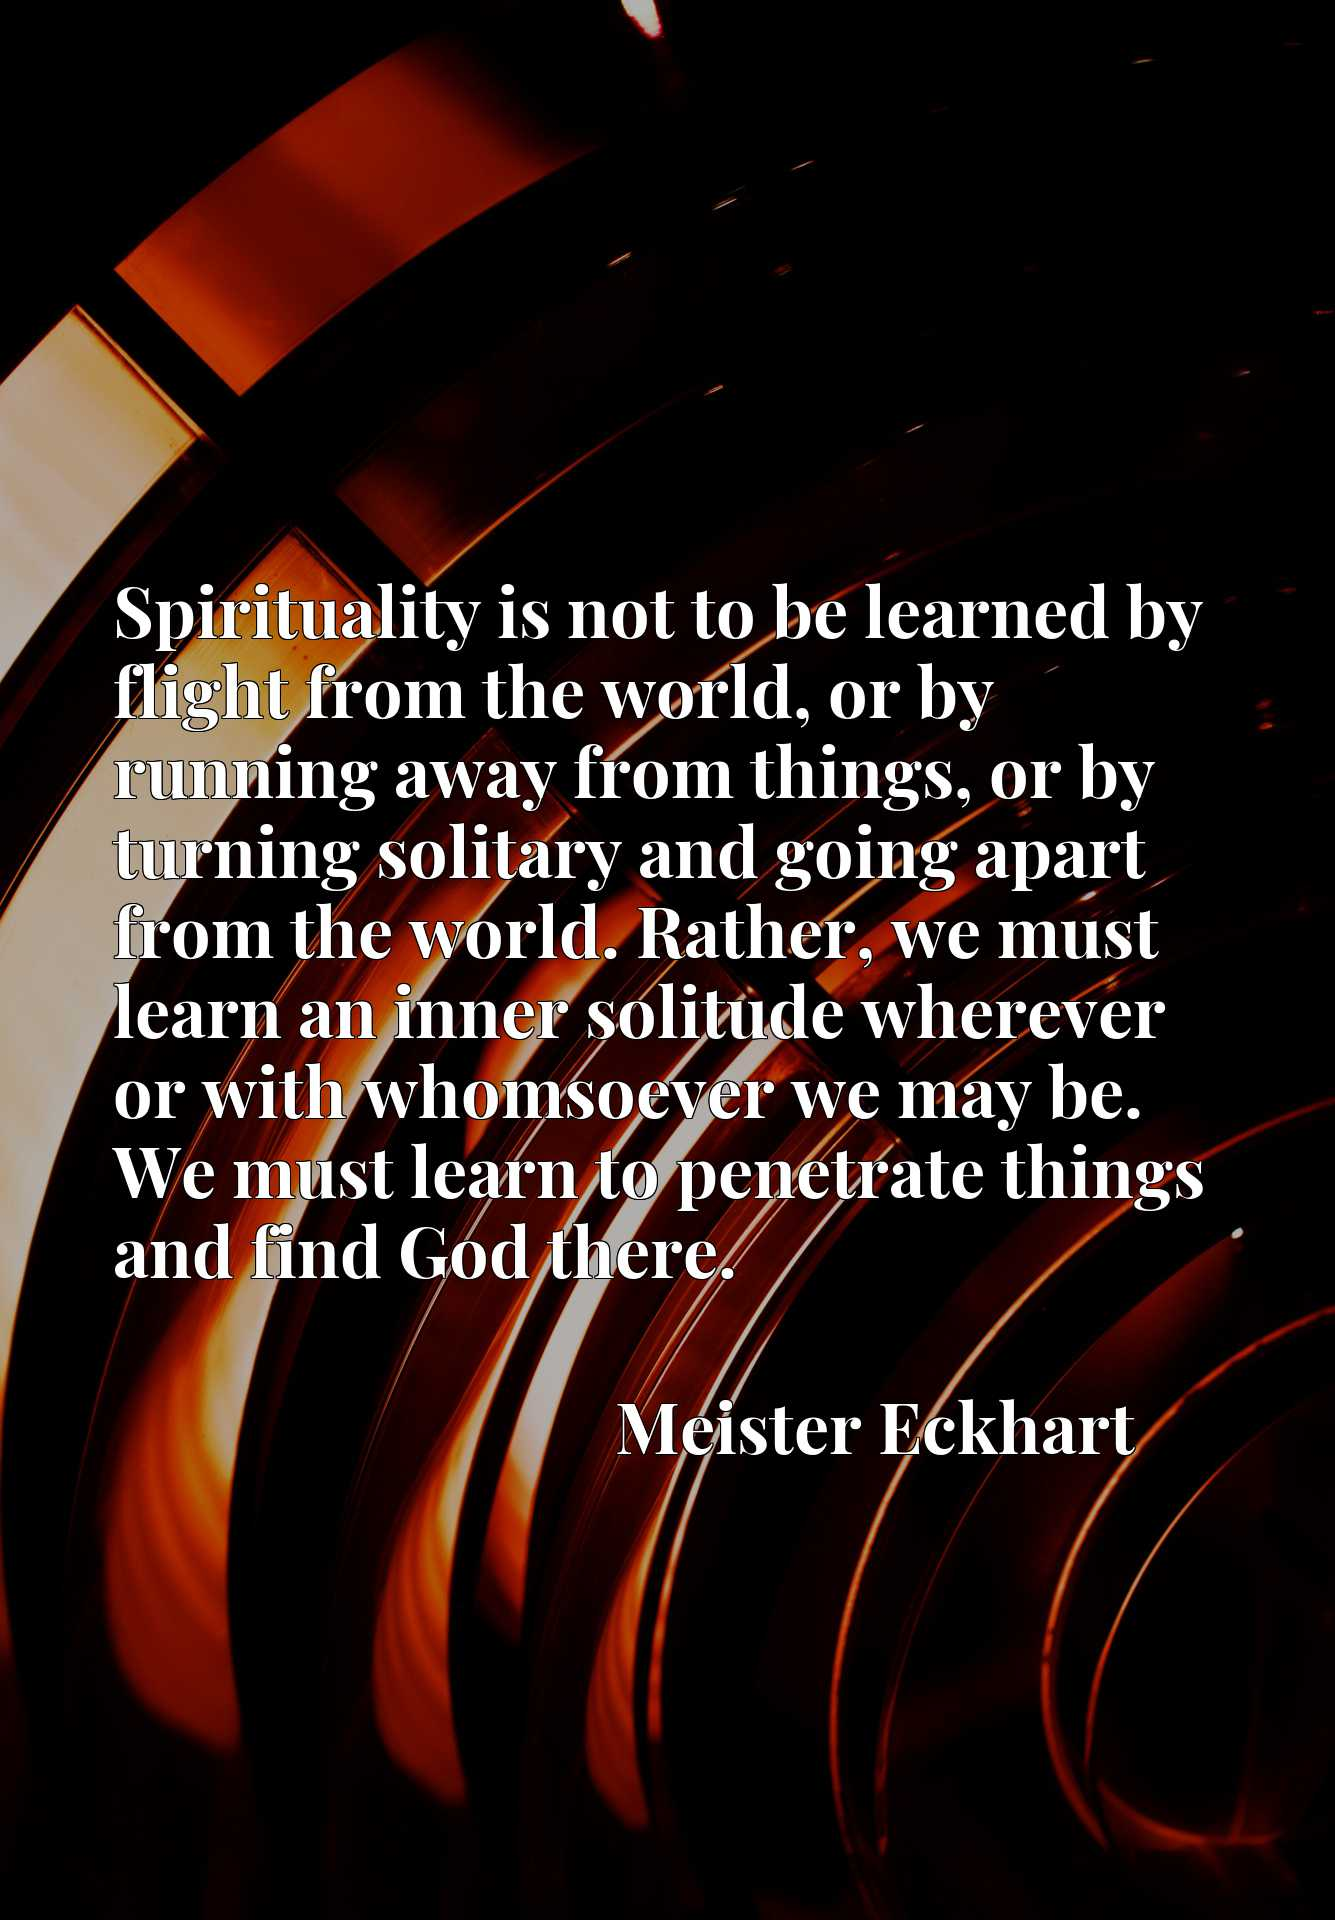 Quote Picture :Spirituality is not to be learned by flight from the world, or by running away from things, or by turning solitary and going apart from the world. Rather, we must learn an inner solitude wherever or with whomsoever we may be. We must learn to penetrate things and find God there.